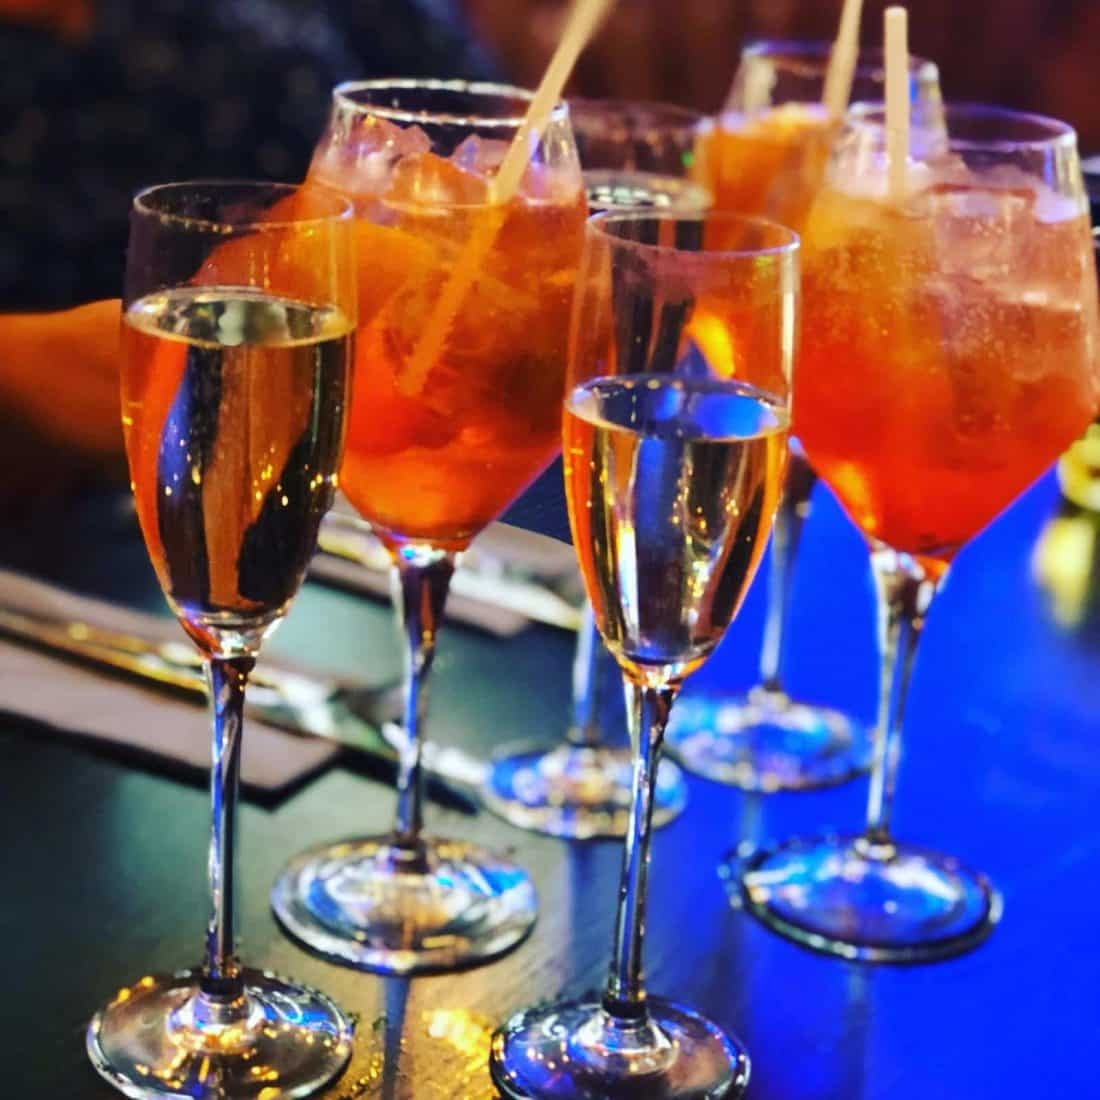 Birthday drinks which were part of September's favourites